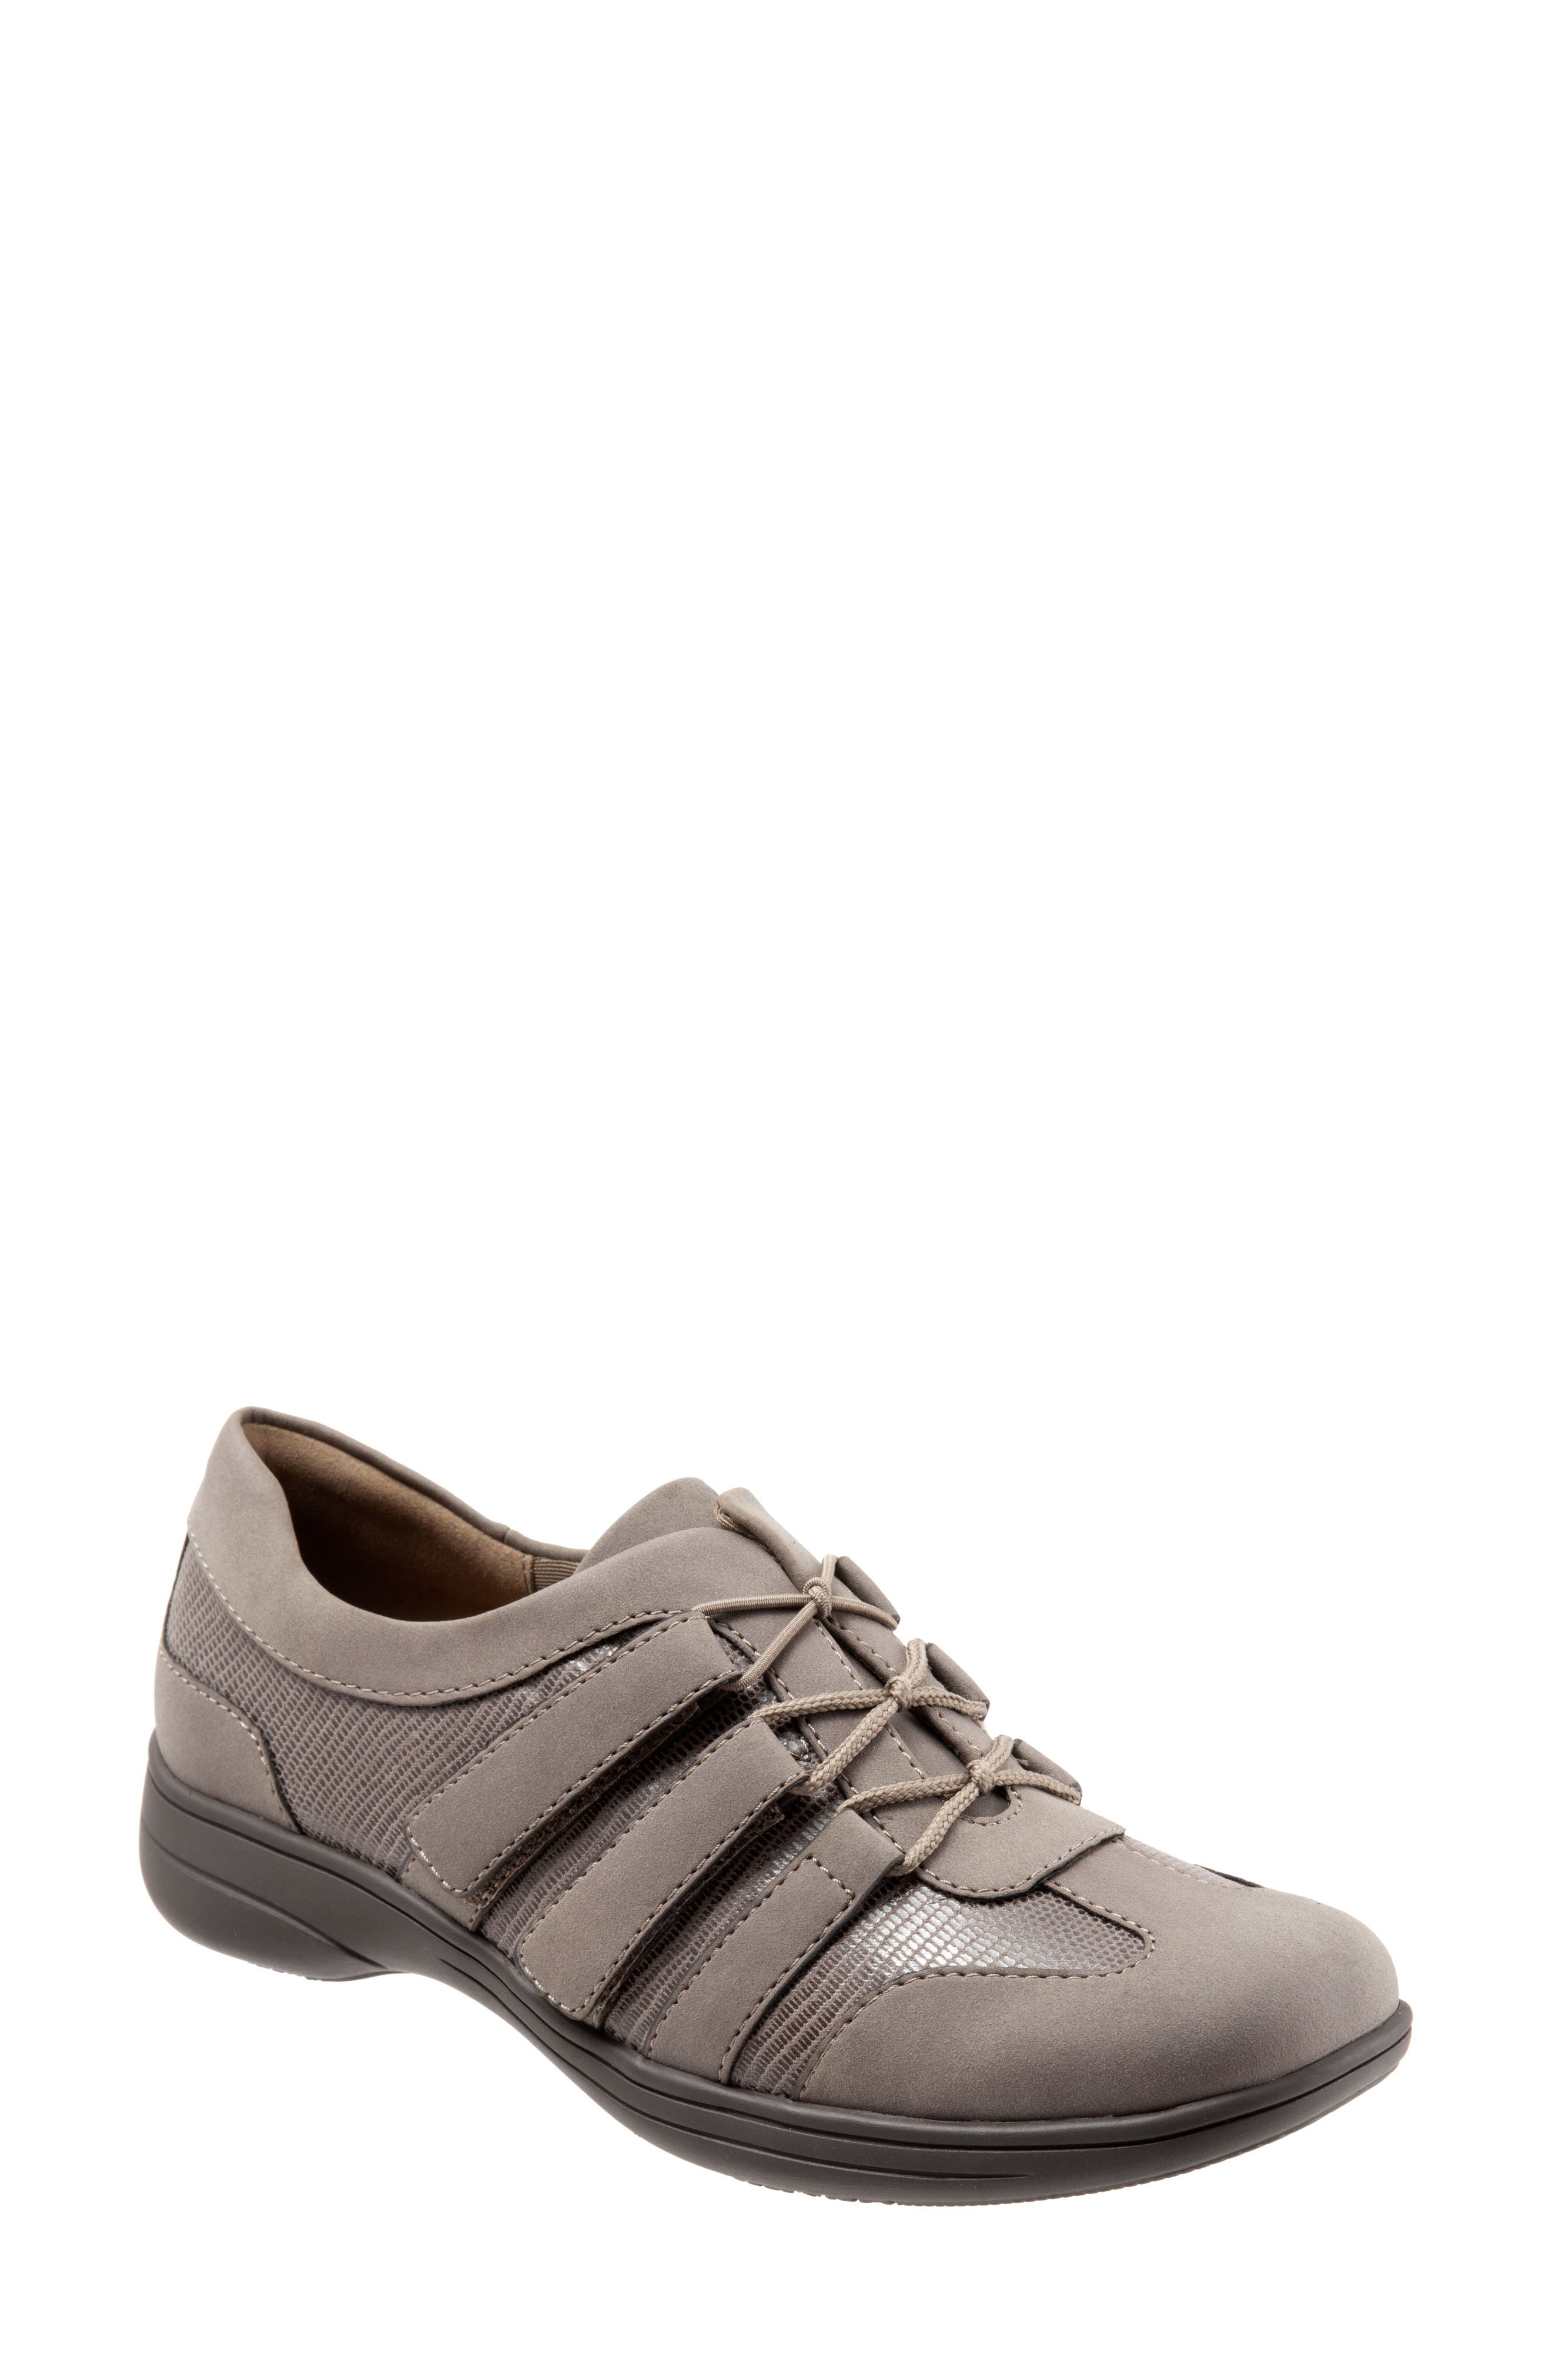 Joy Slip-On Sneaker,                         Main,                         color, TAUPE LEATHER